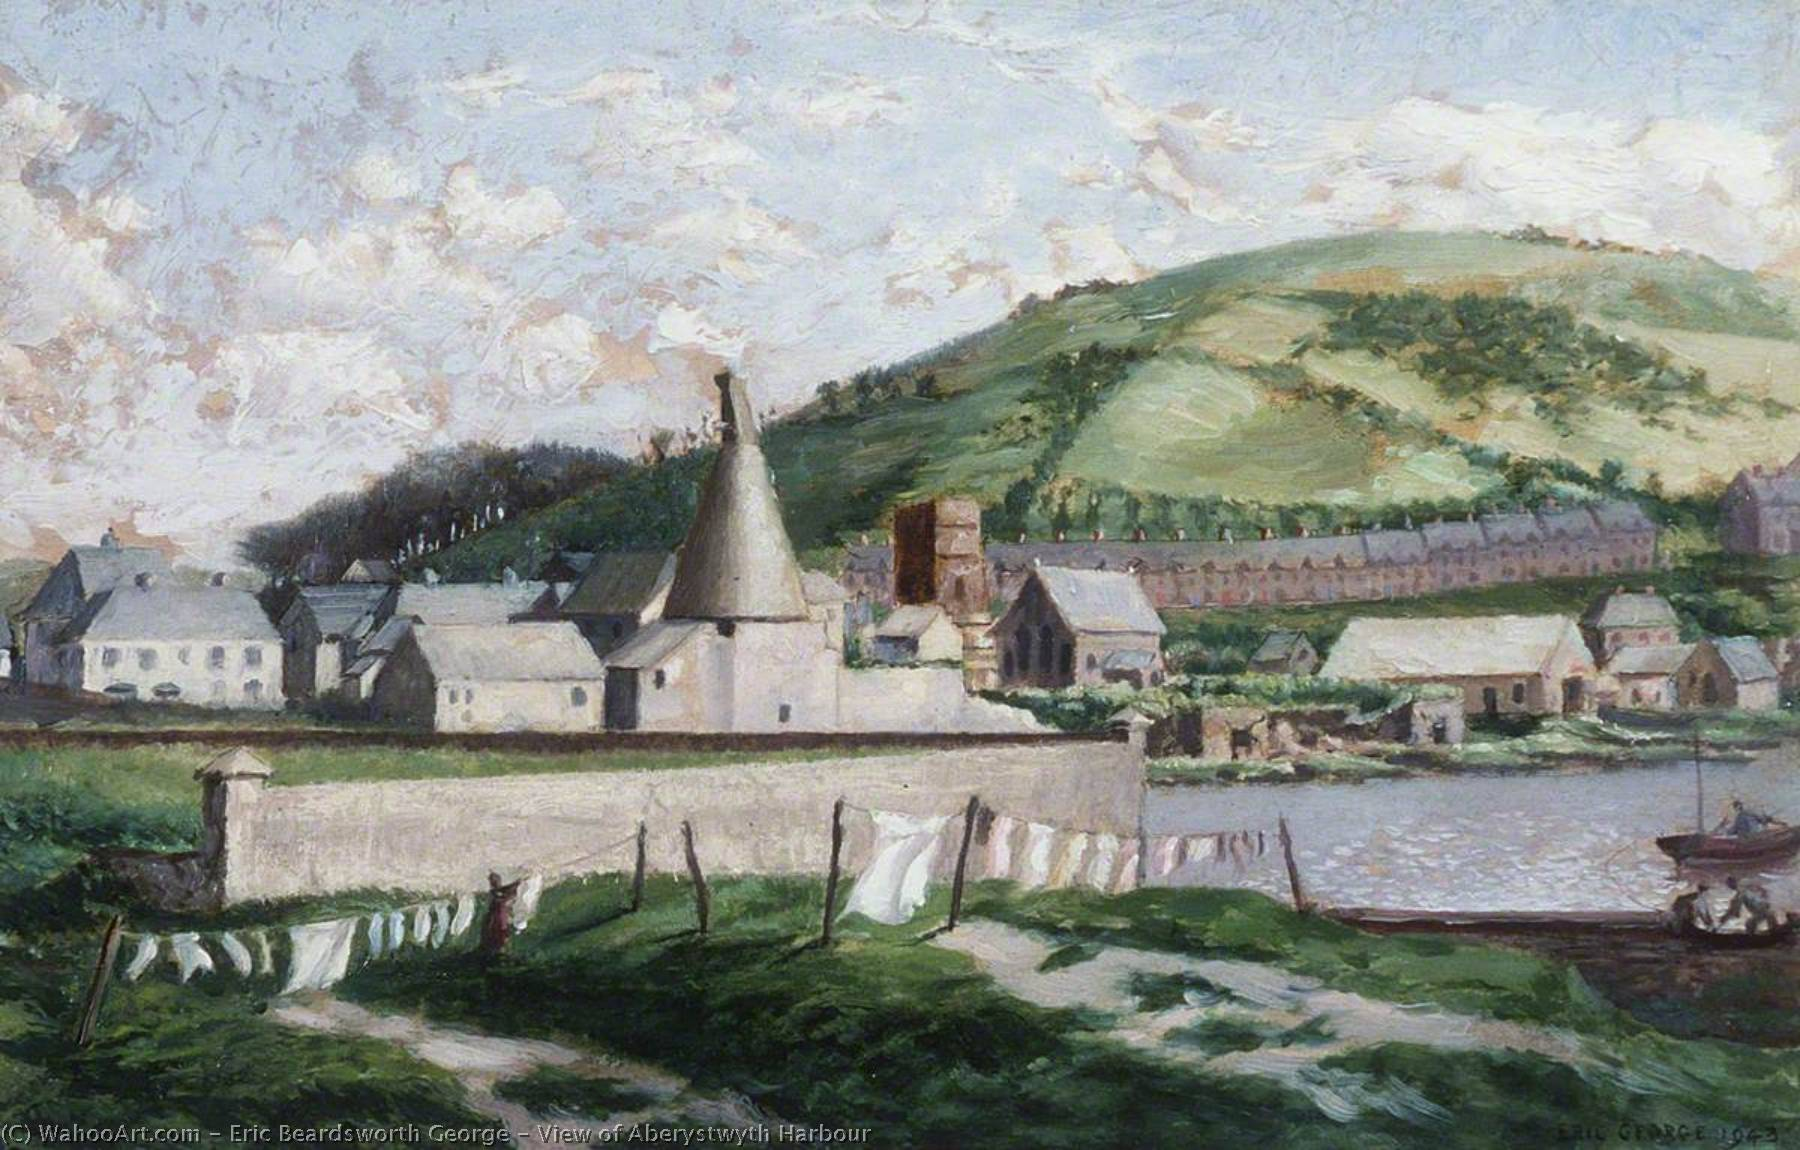 View of Aberystwyth Harbour, Oil by Eric Beardsworth George